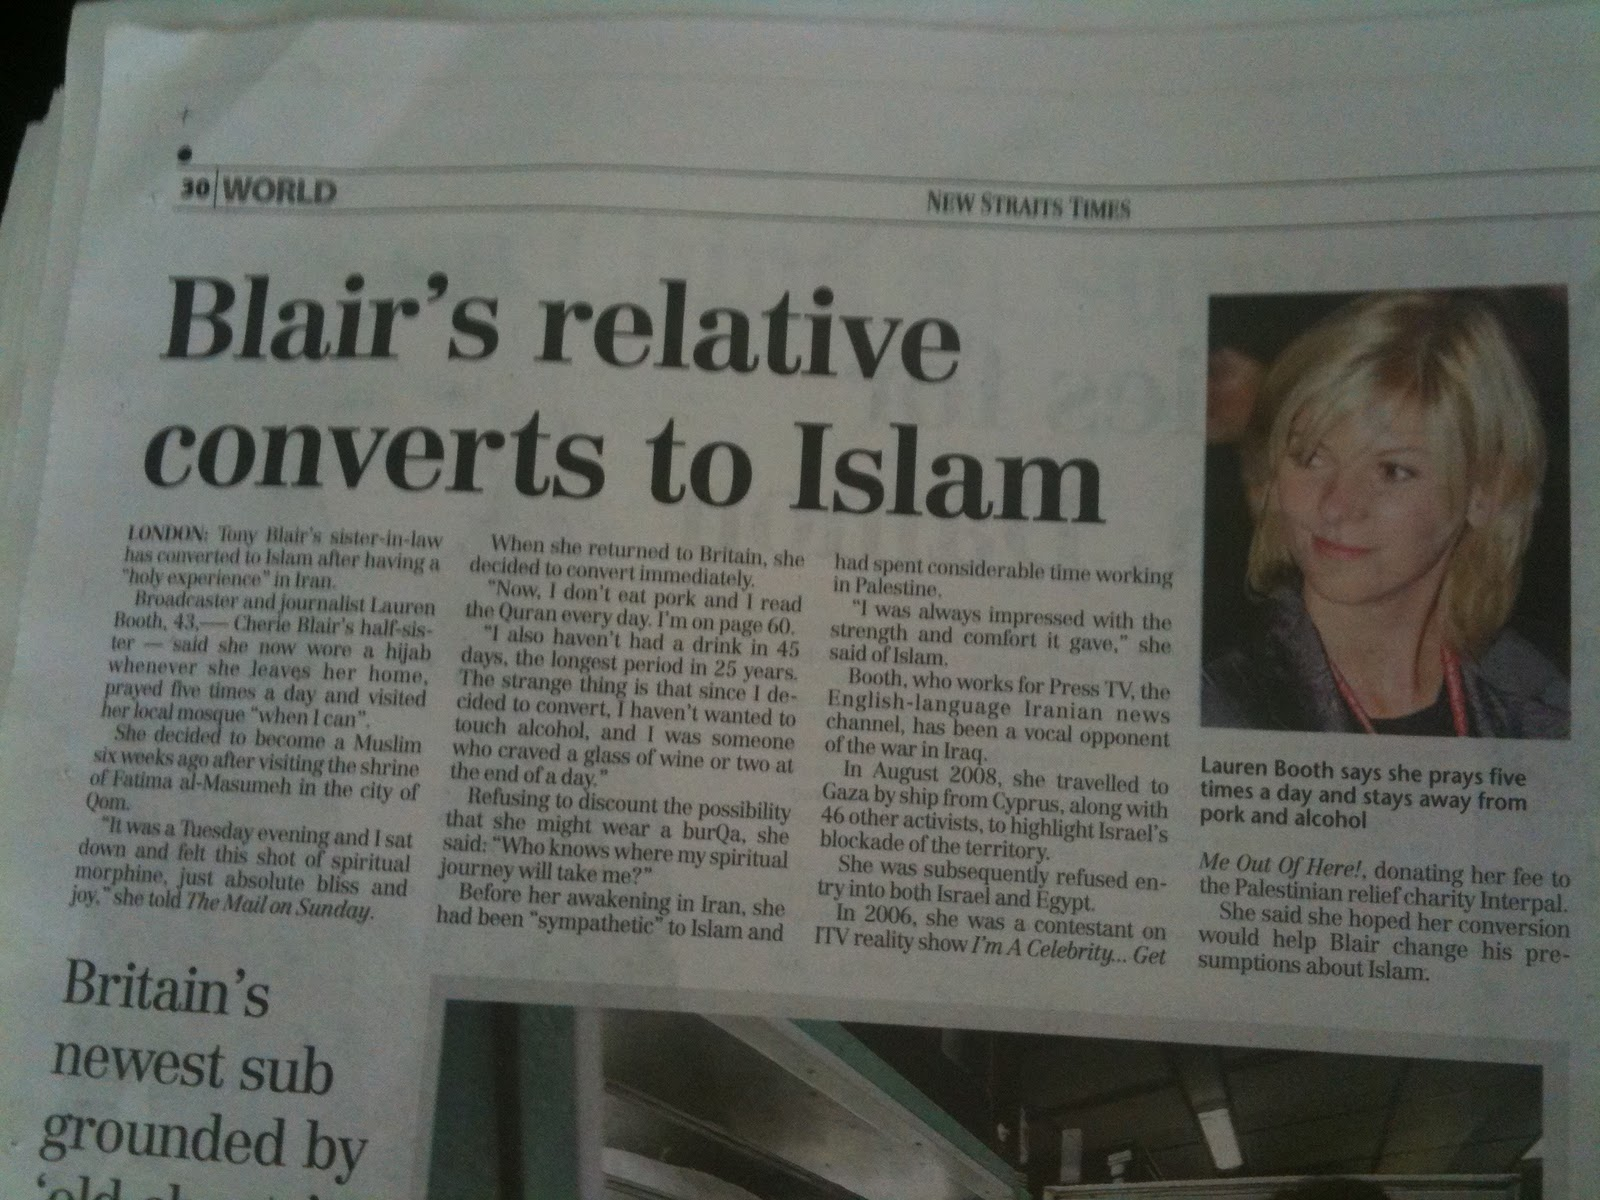 blairs muslim There's another convert in the blair family, according to news reports: it could certainly make family get-togethers interesting tony blair's sister-in-law lauren booth has converted to islam the former prime minister is also.